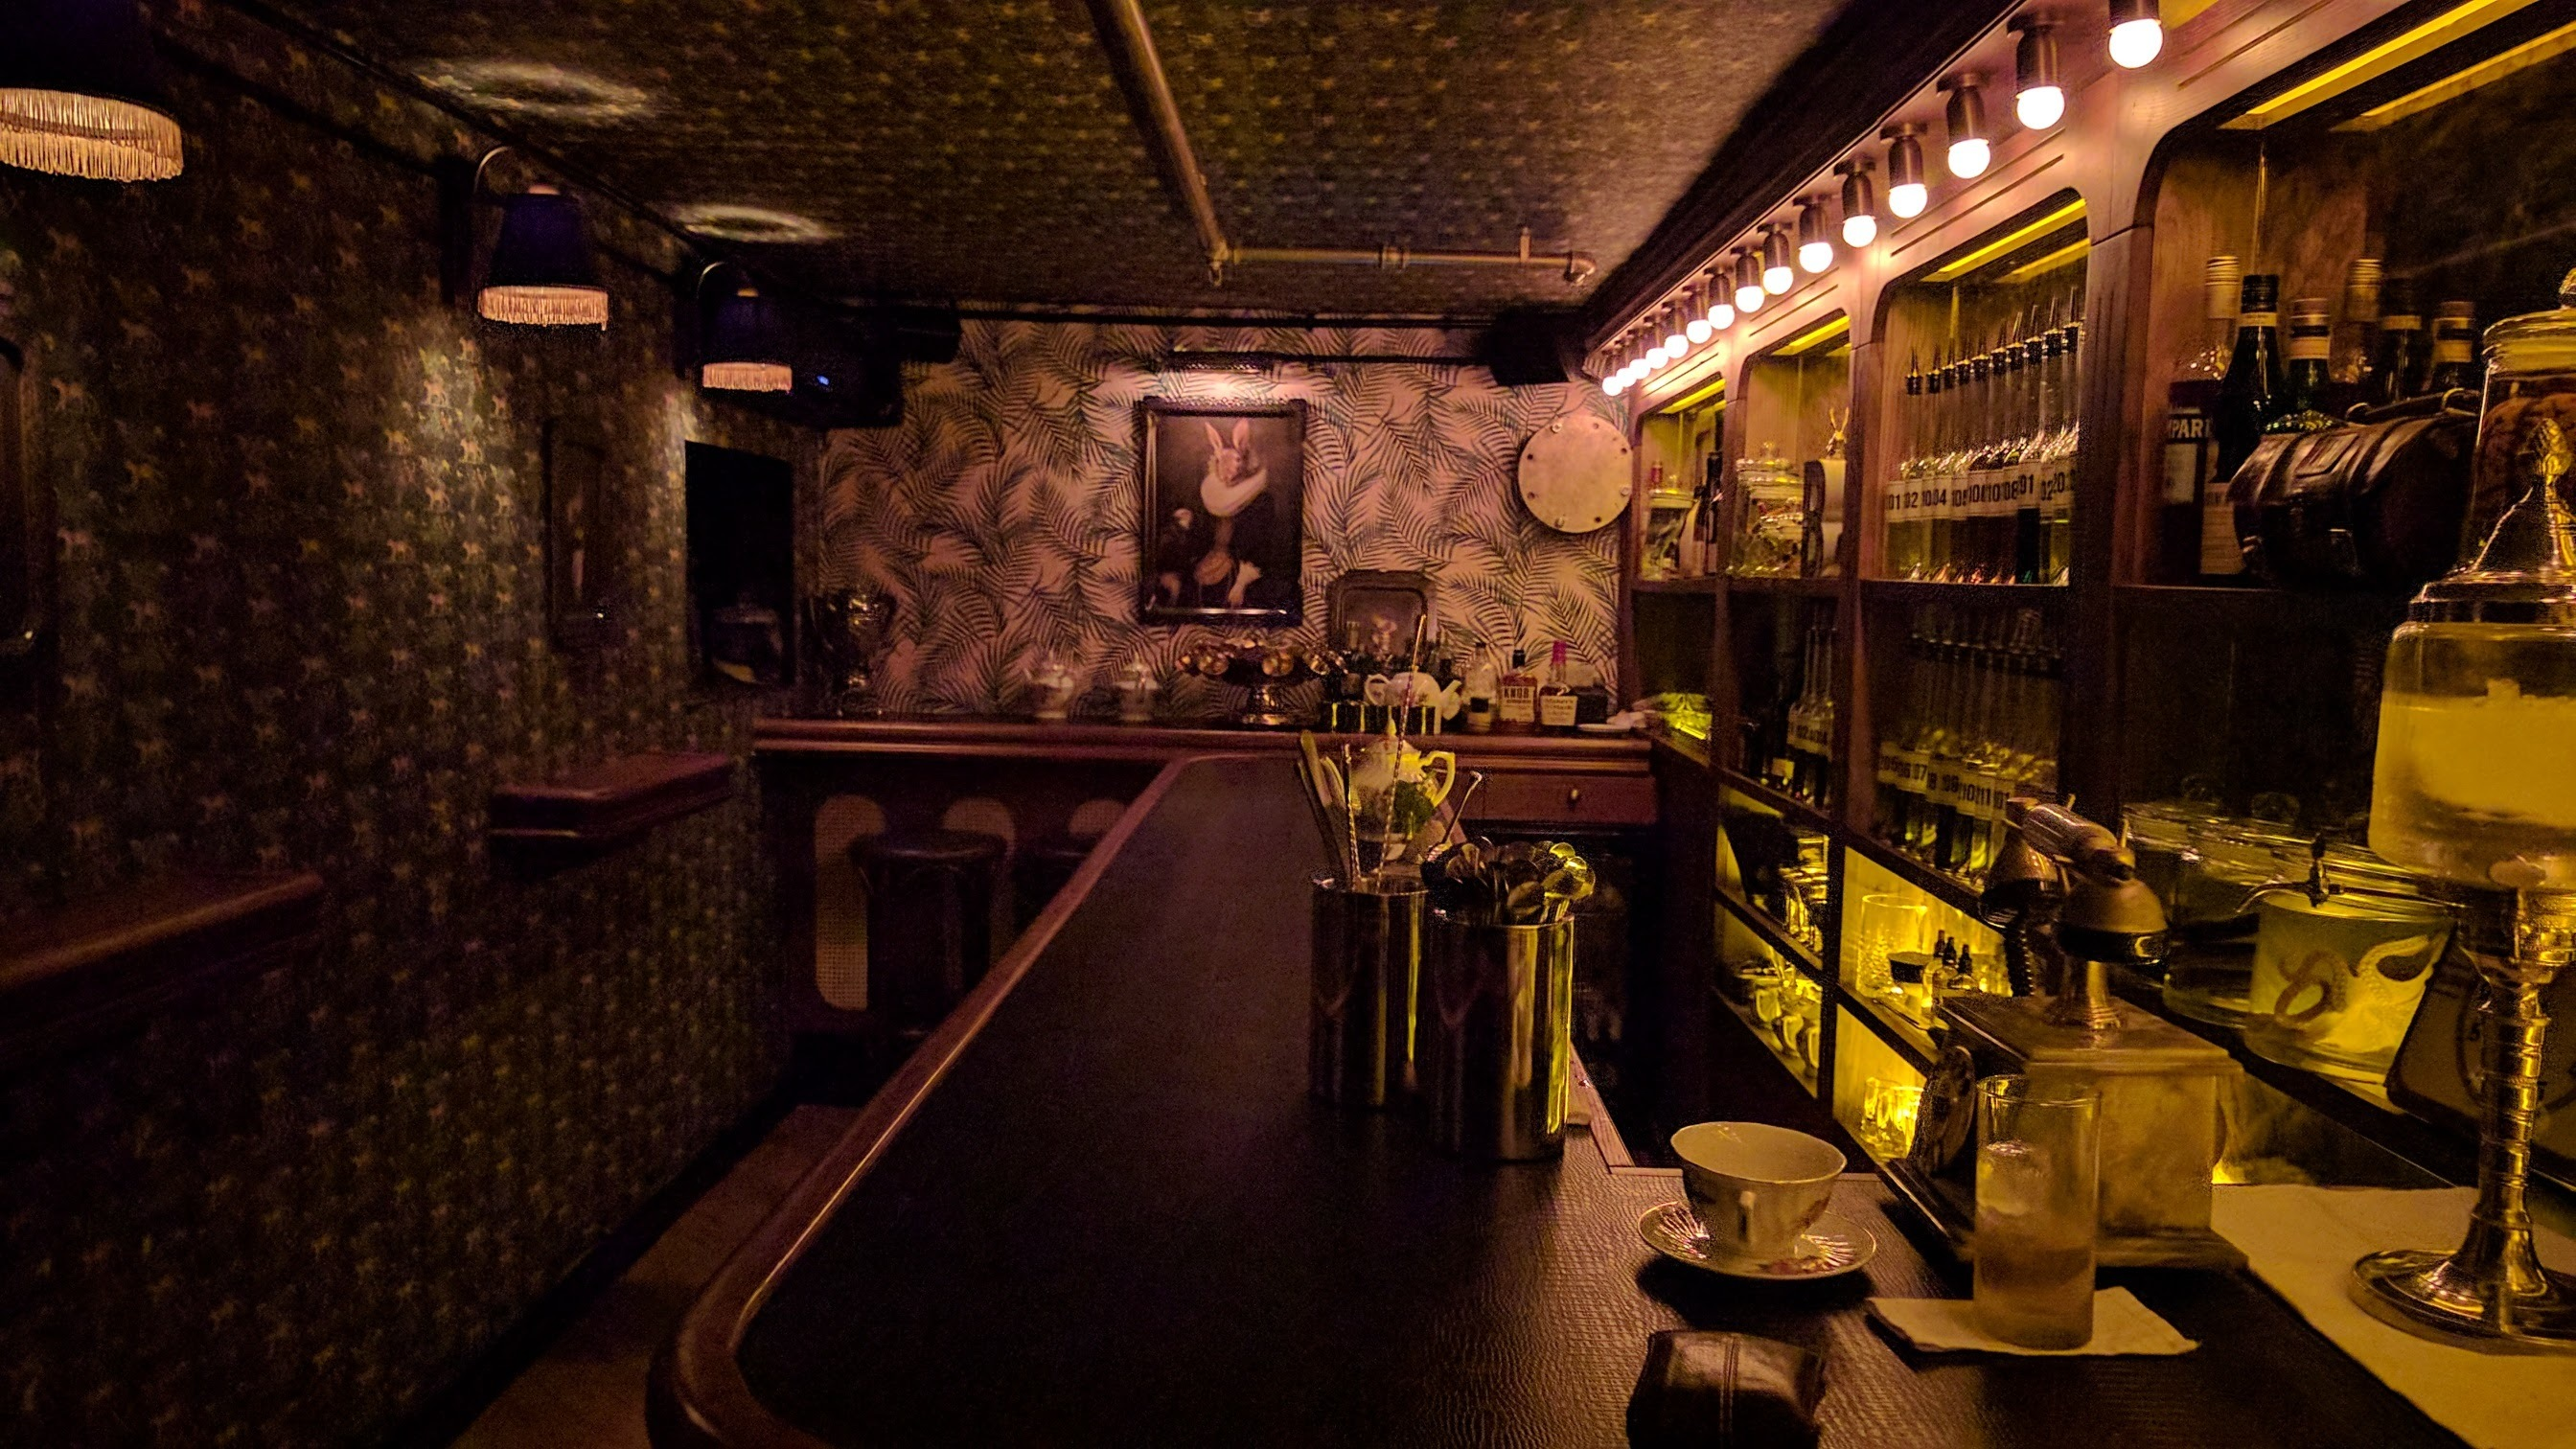 Ariel Leizgold unveils his newest cocktail bar creation: Butler - a Wes Anderson meets Charles Dickens meets Jekyll and Hyde masterpiece